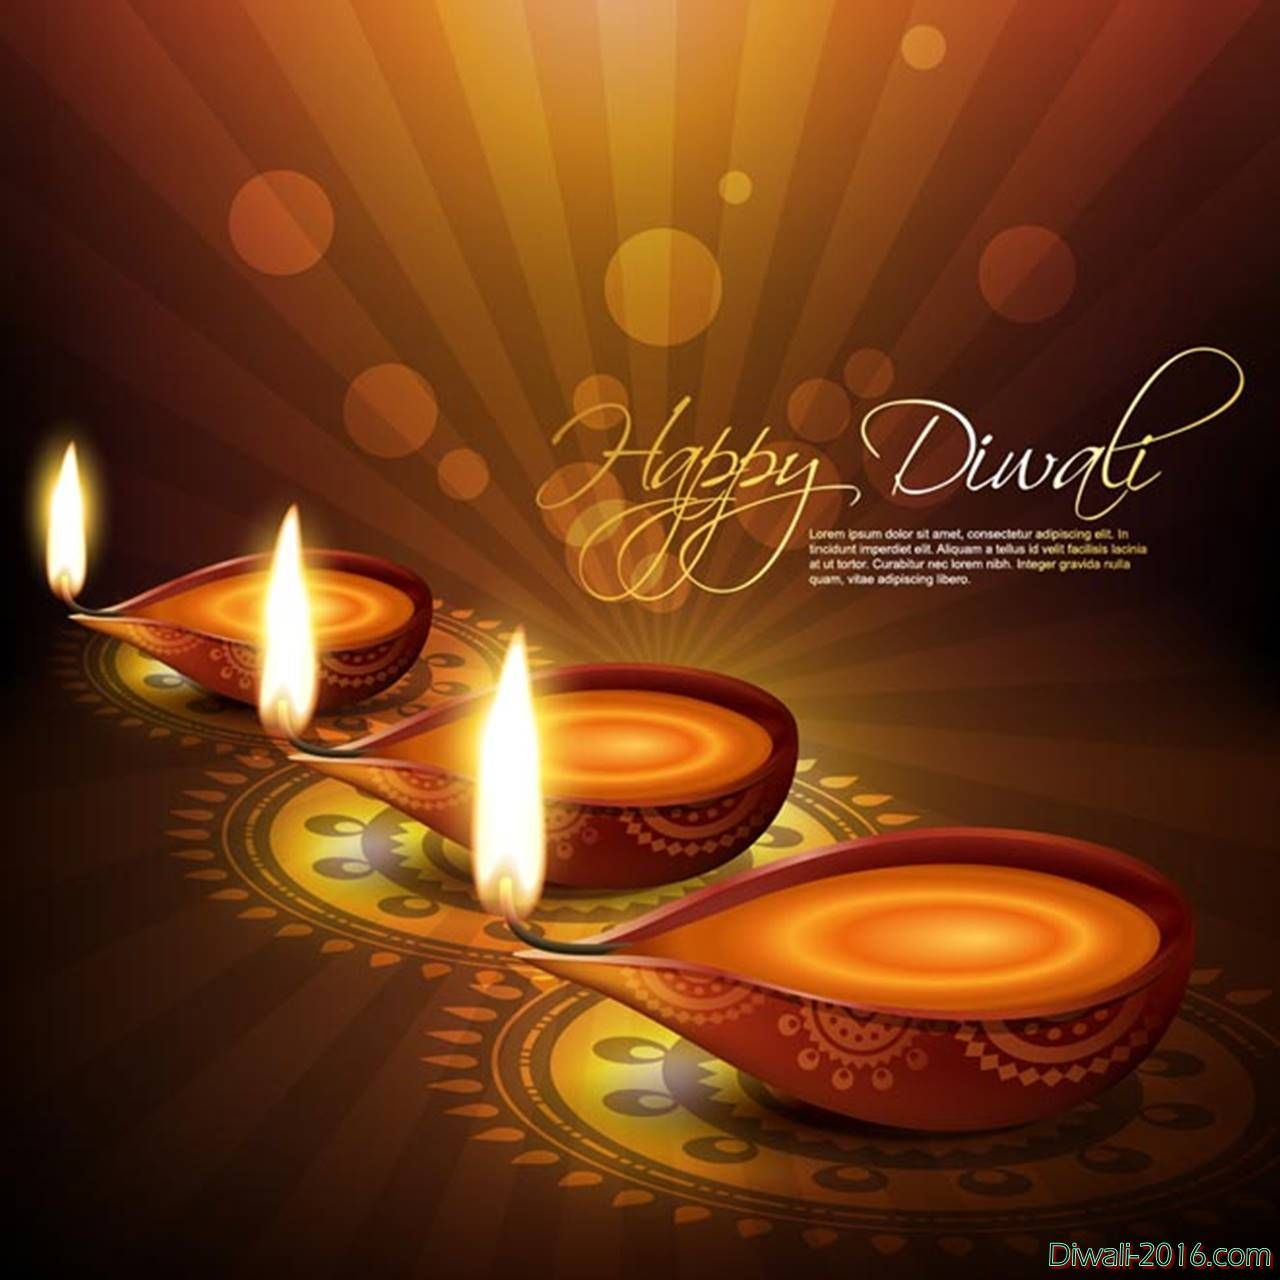 Diwali image free download 31 top images of happy diwali happy diwali greeting cards diwali wishes diwali devali deepavali is a festival celebrated in india by decorating their houses with clay diyas and be kristyandbryce Image collections